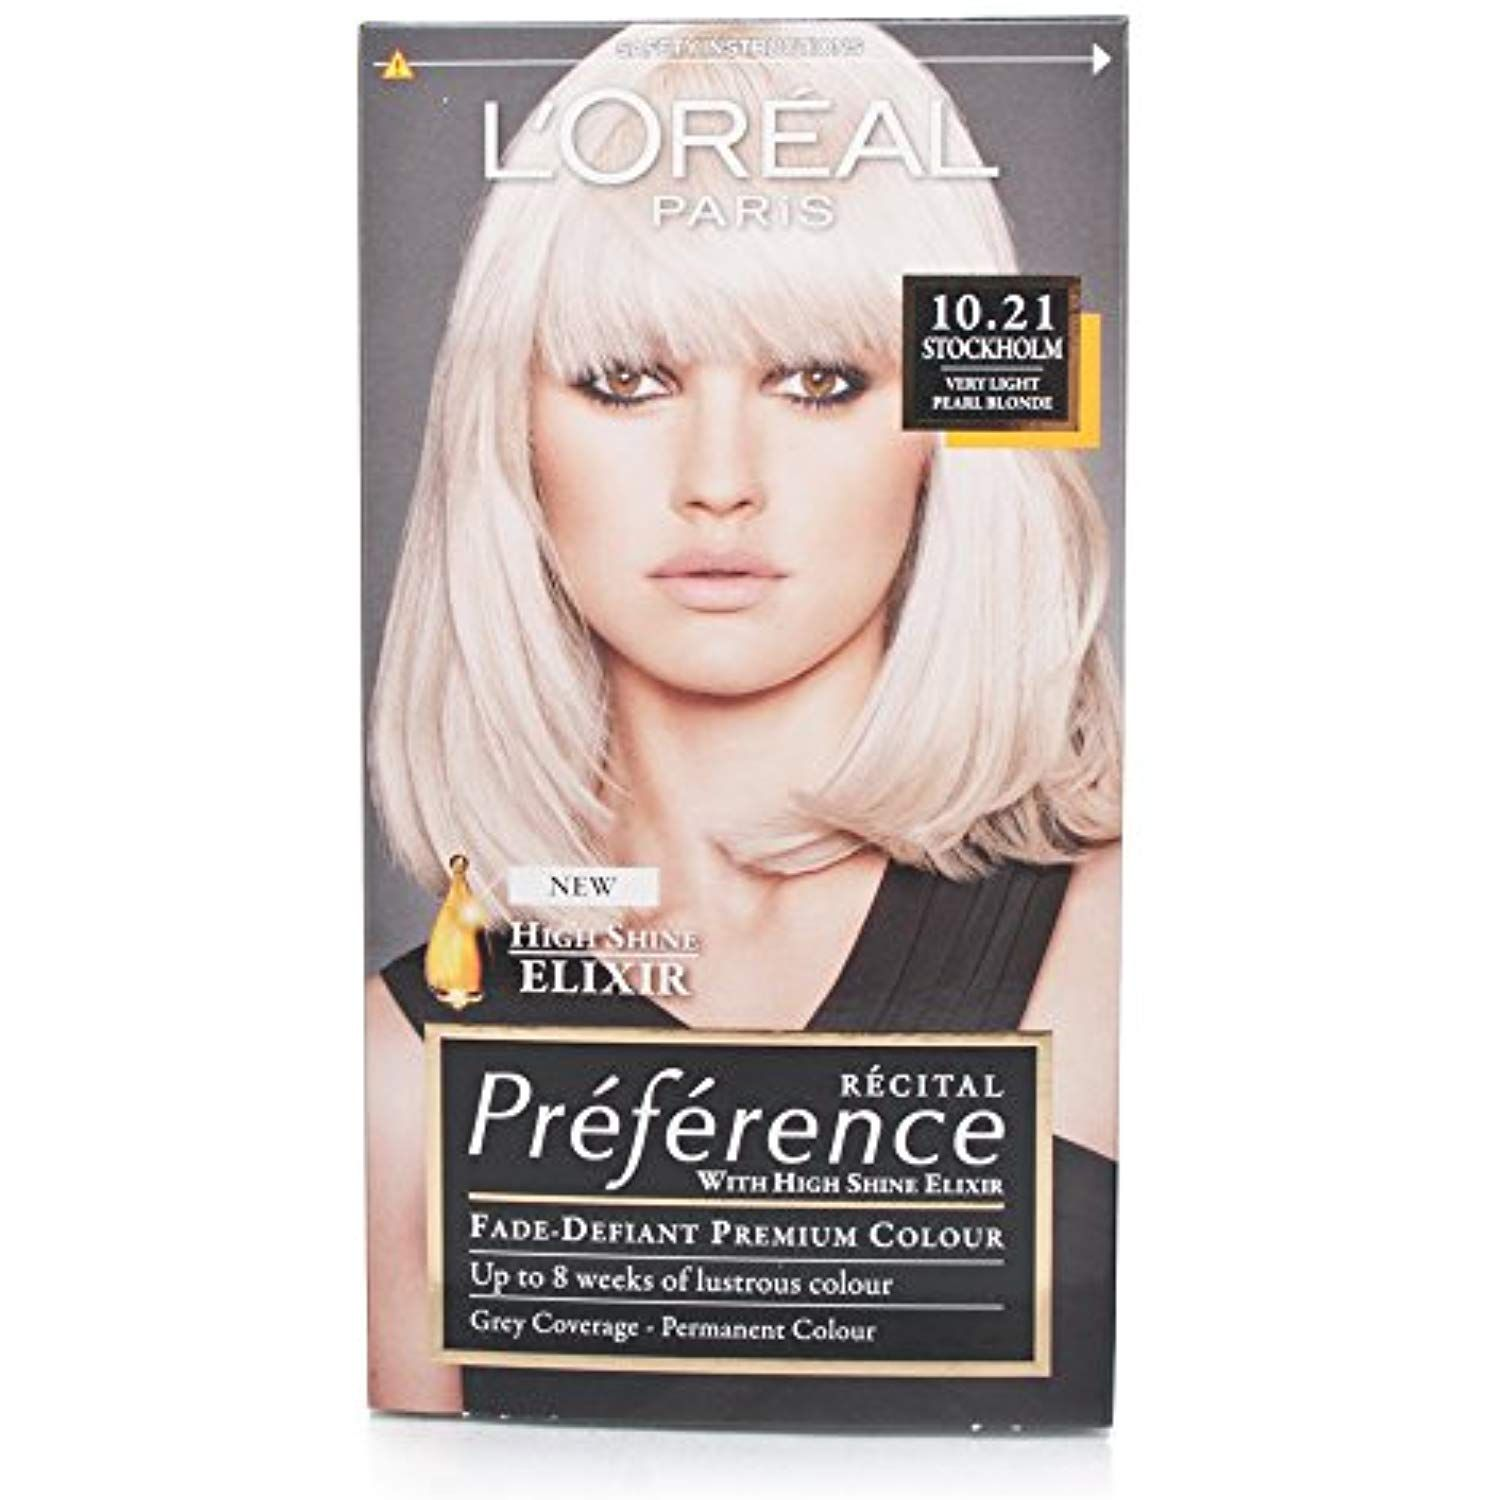 Recital Preference By L Oreal Paris 10 21 Stockholm Very Light Pearl Blonde By L Oreal Paris Be Sure To C Loreal Hair Color Loreal Hair Color Blonde Loreal